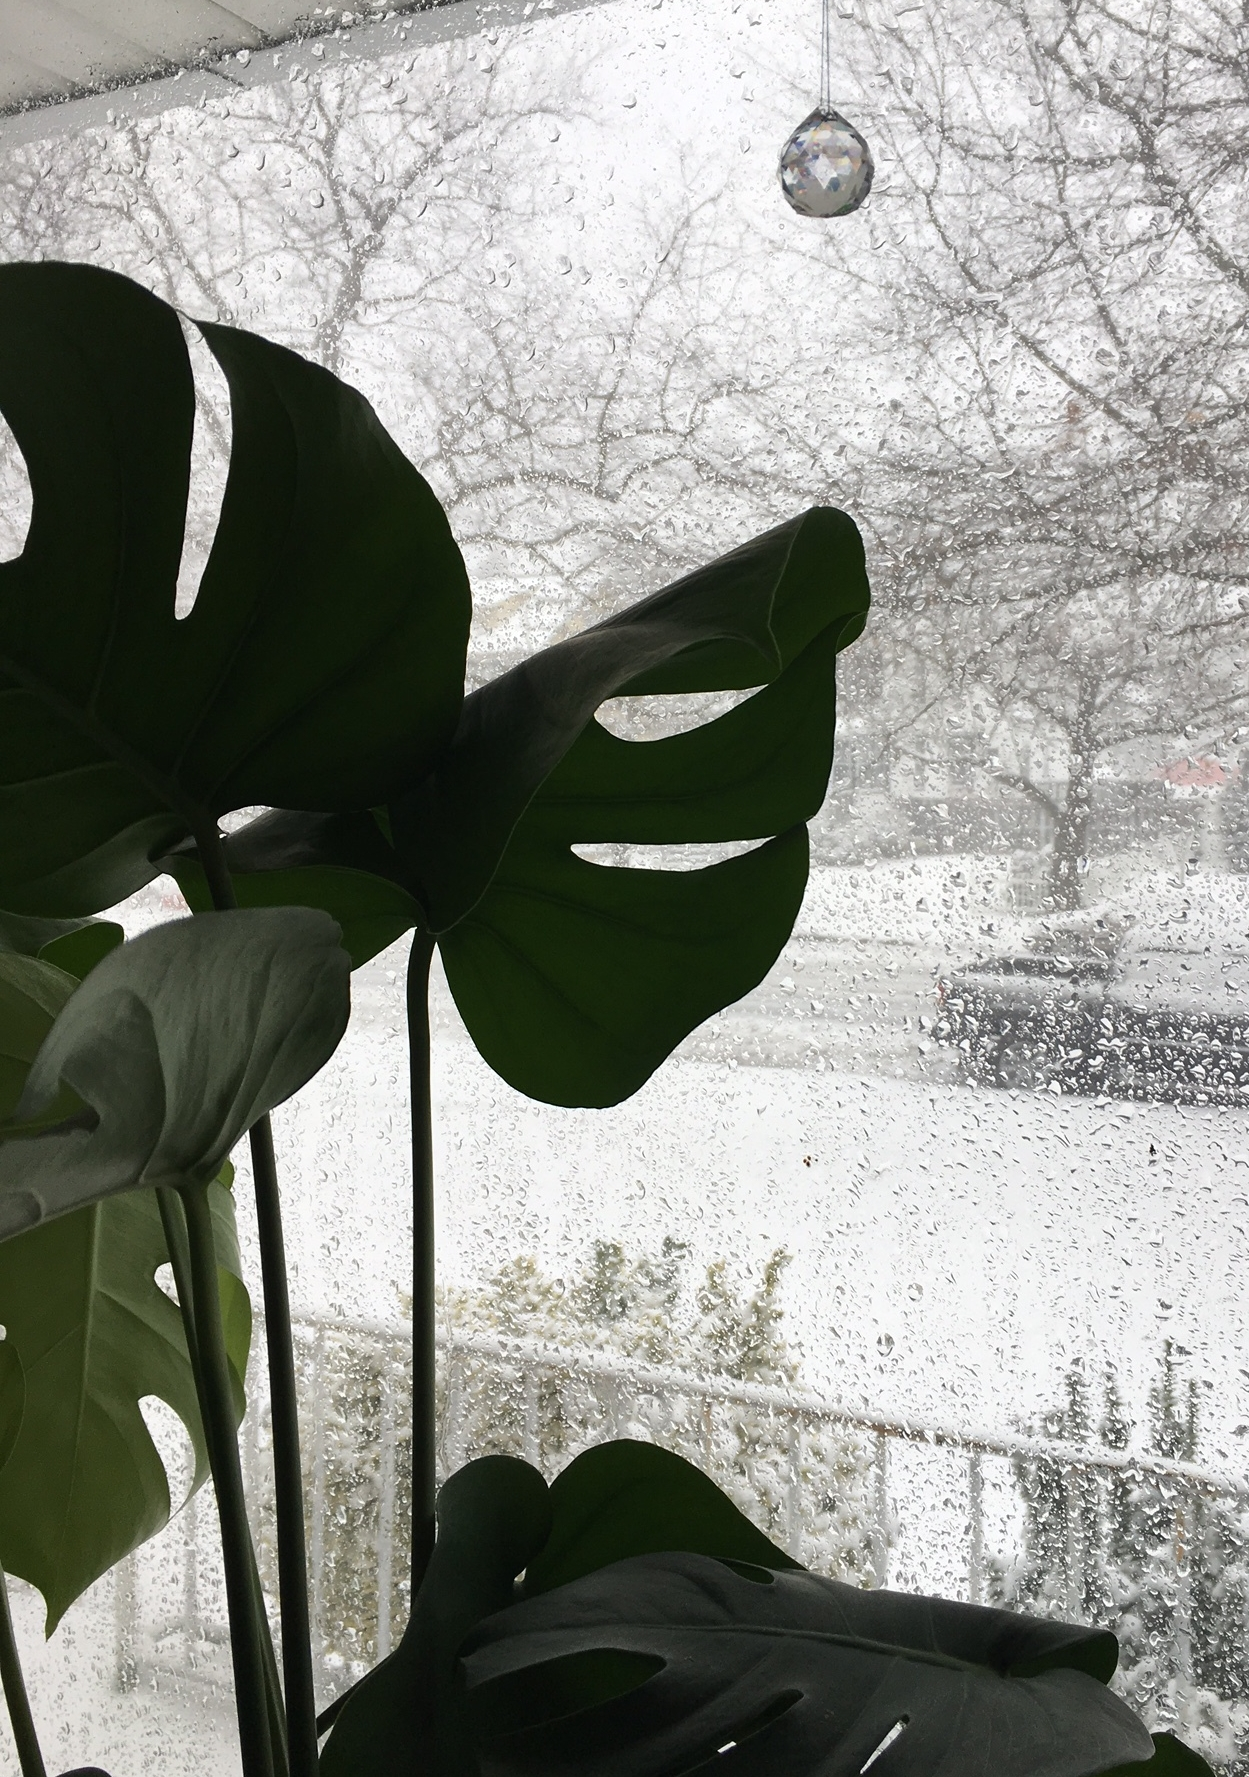 One of the best ways to view a snow storm is through the house plants.